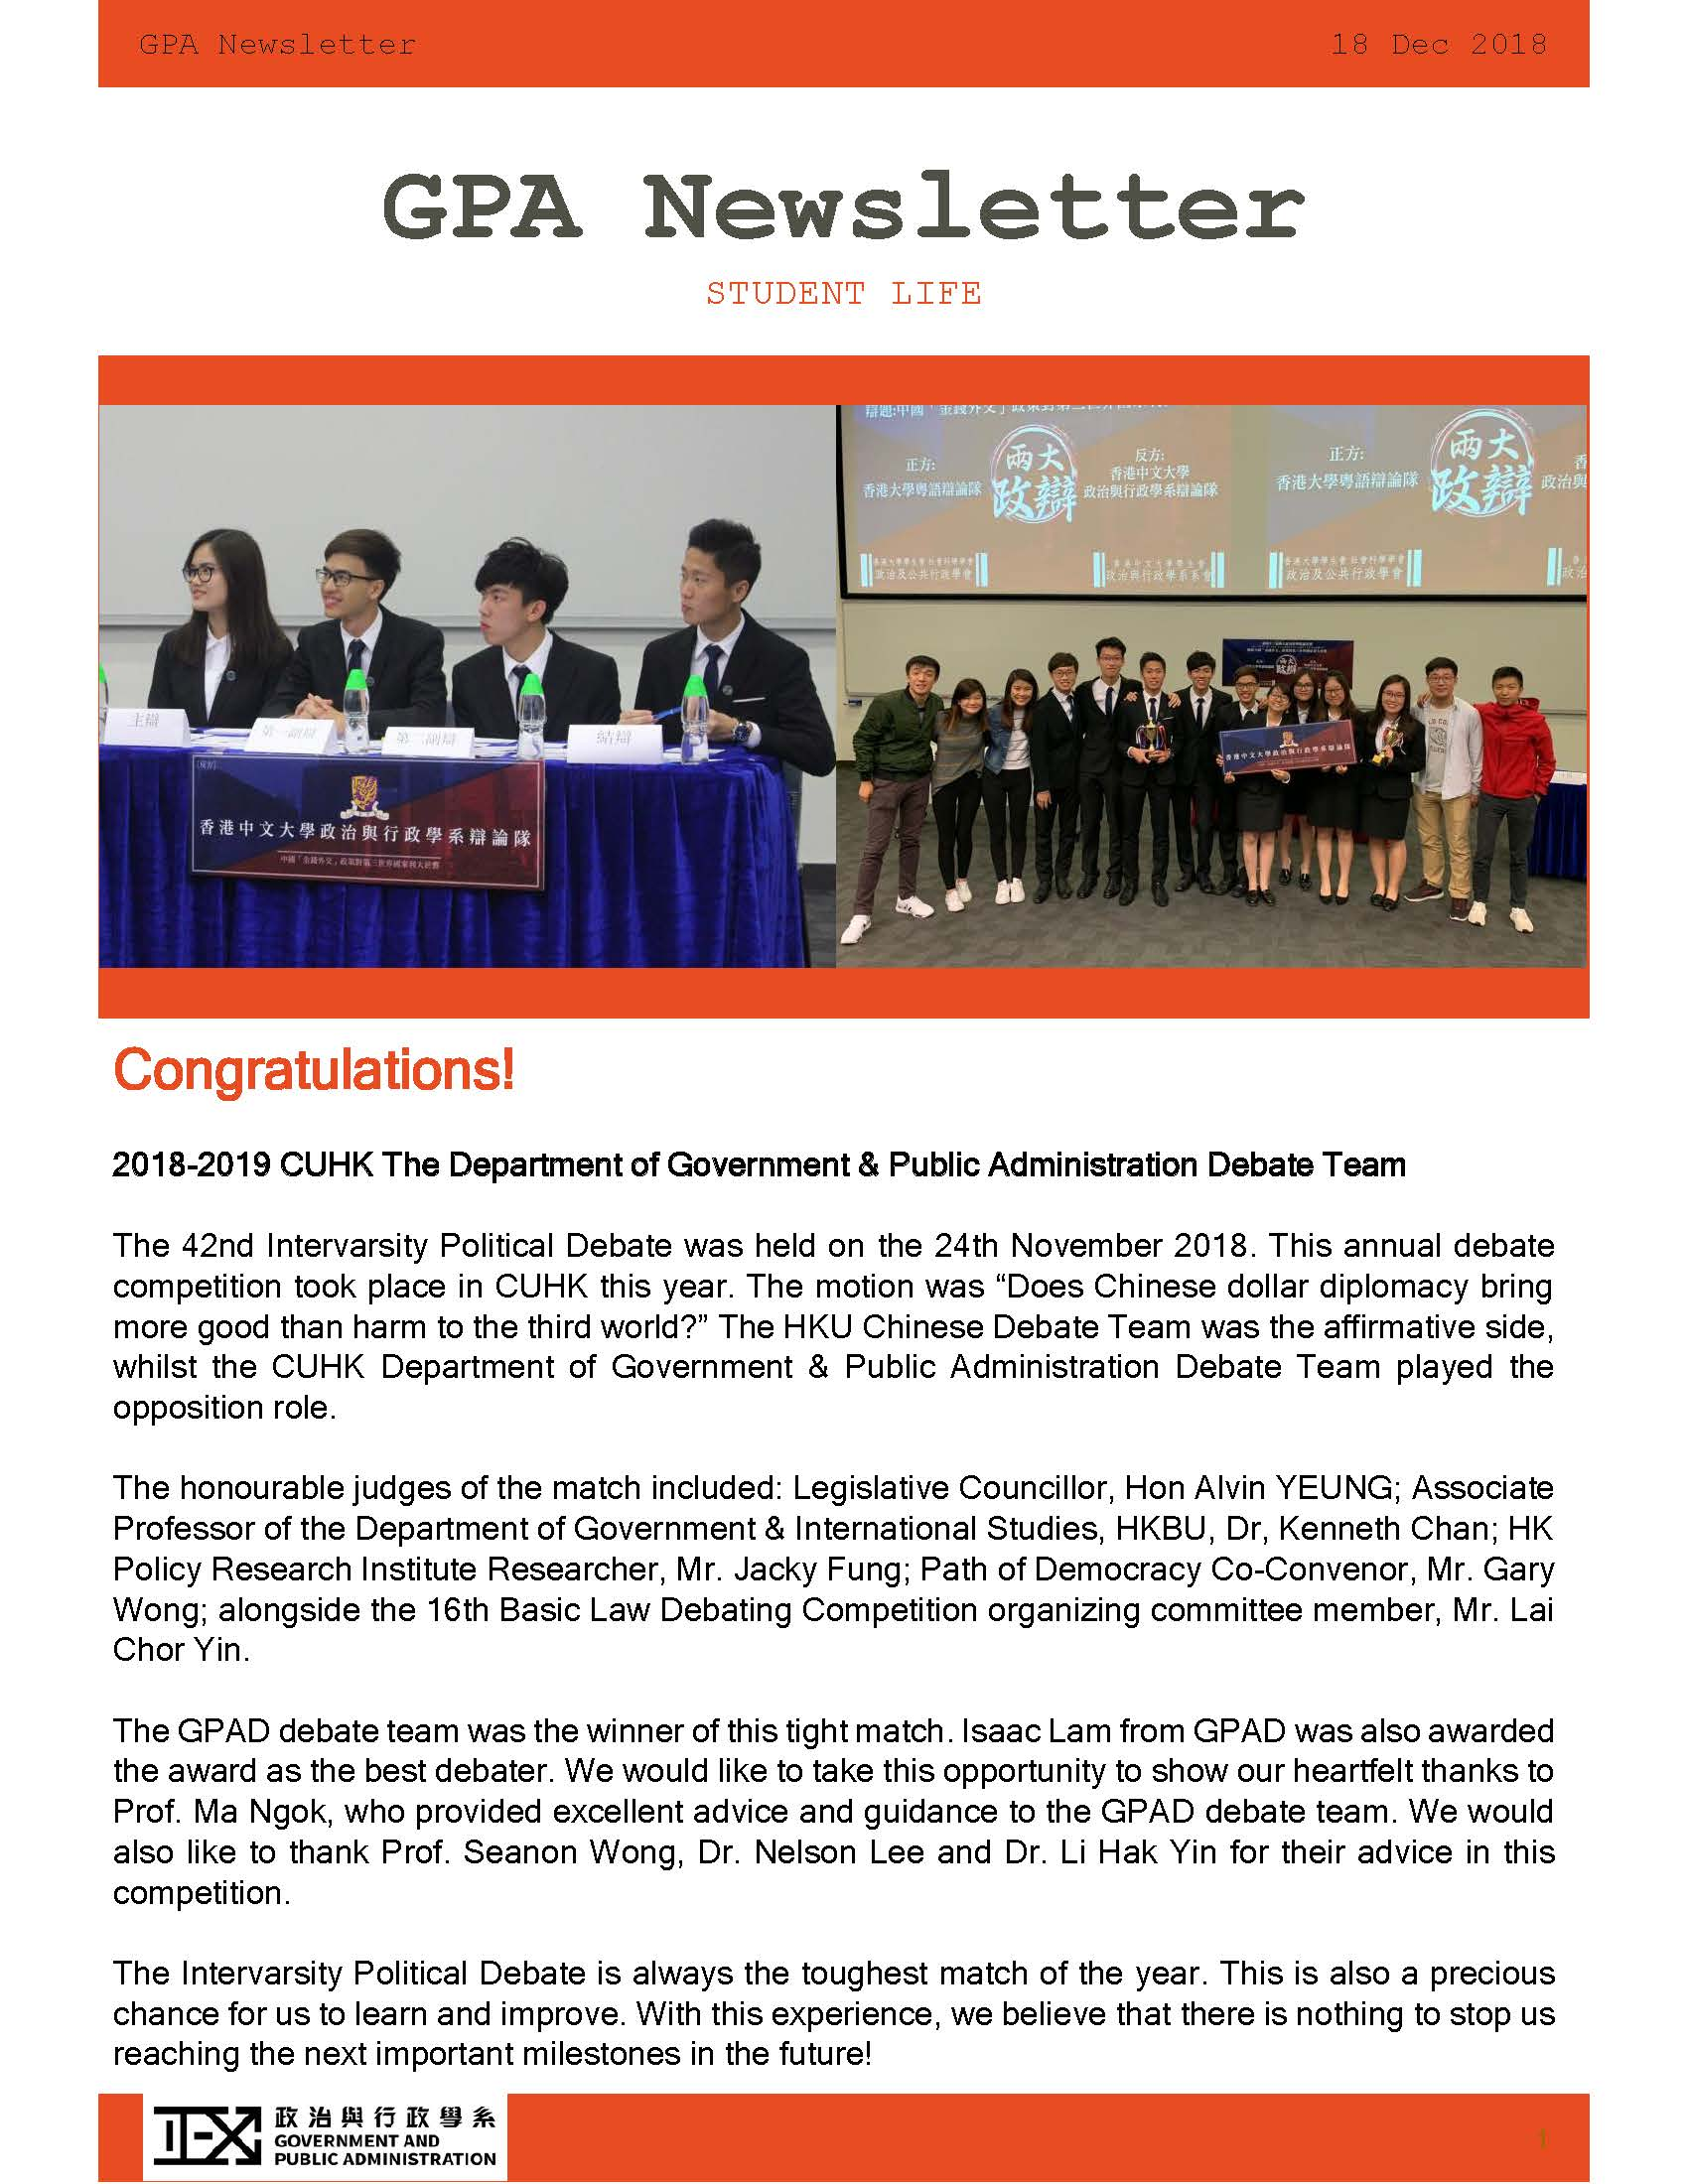 GPA Quarterly Newsletter Dec 2018 Page 1